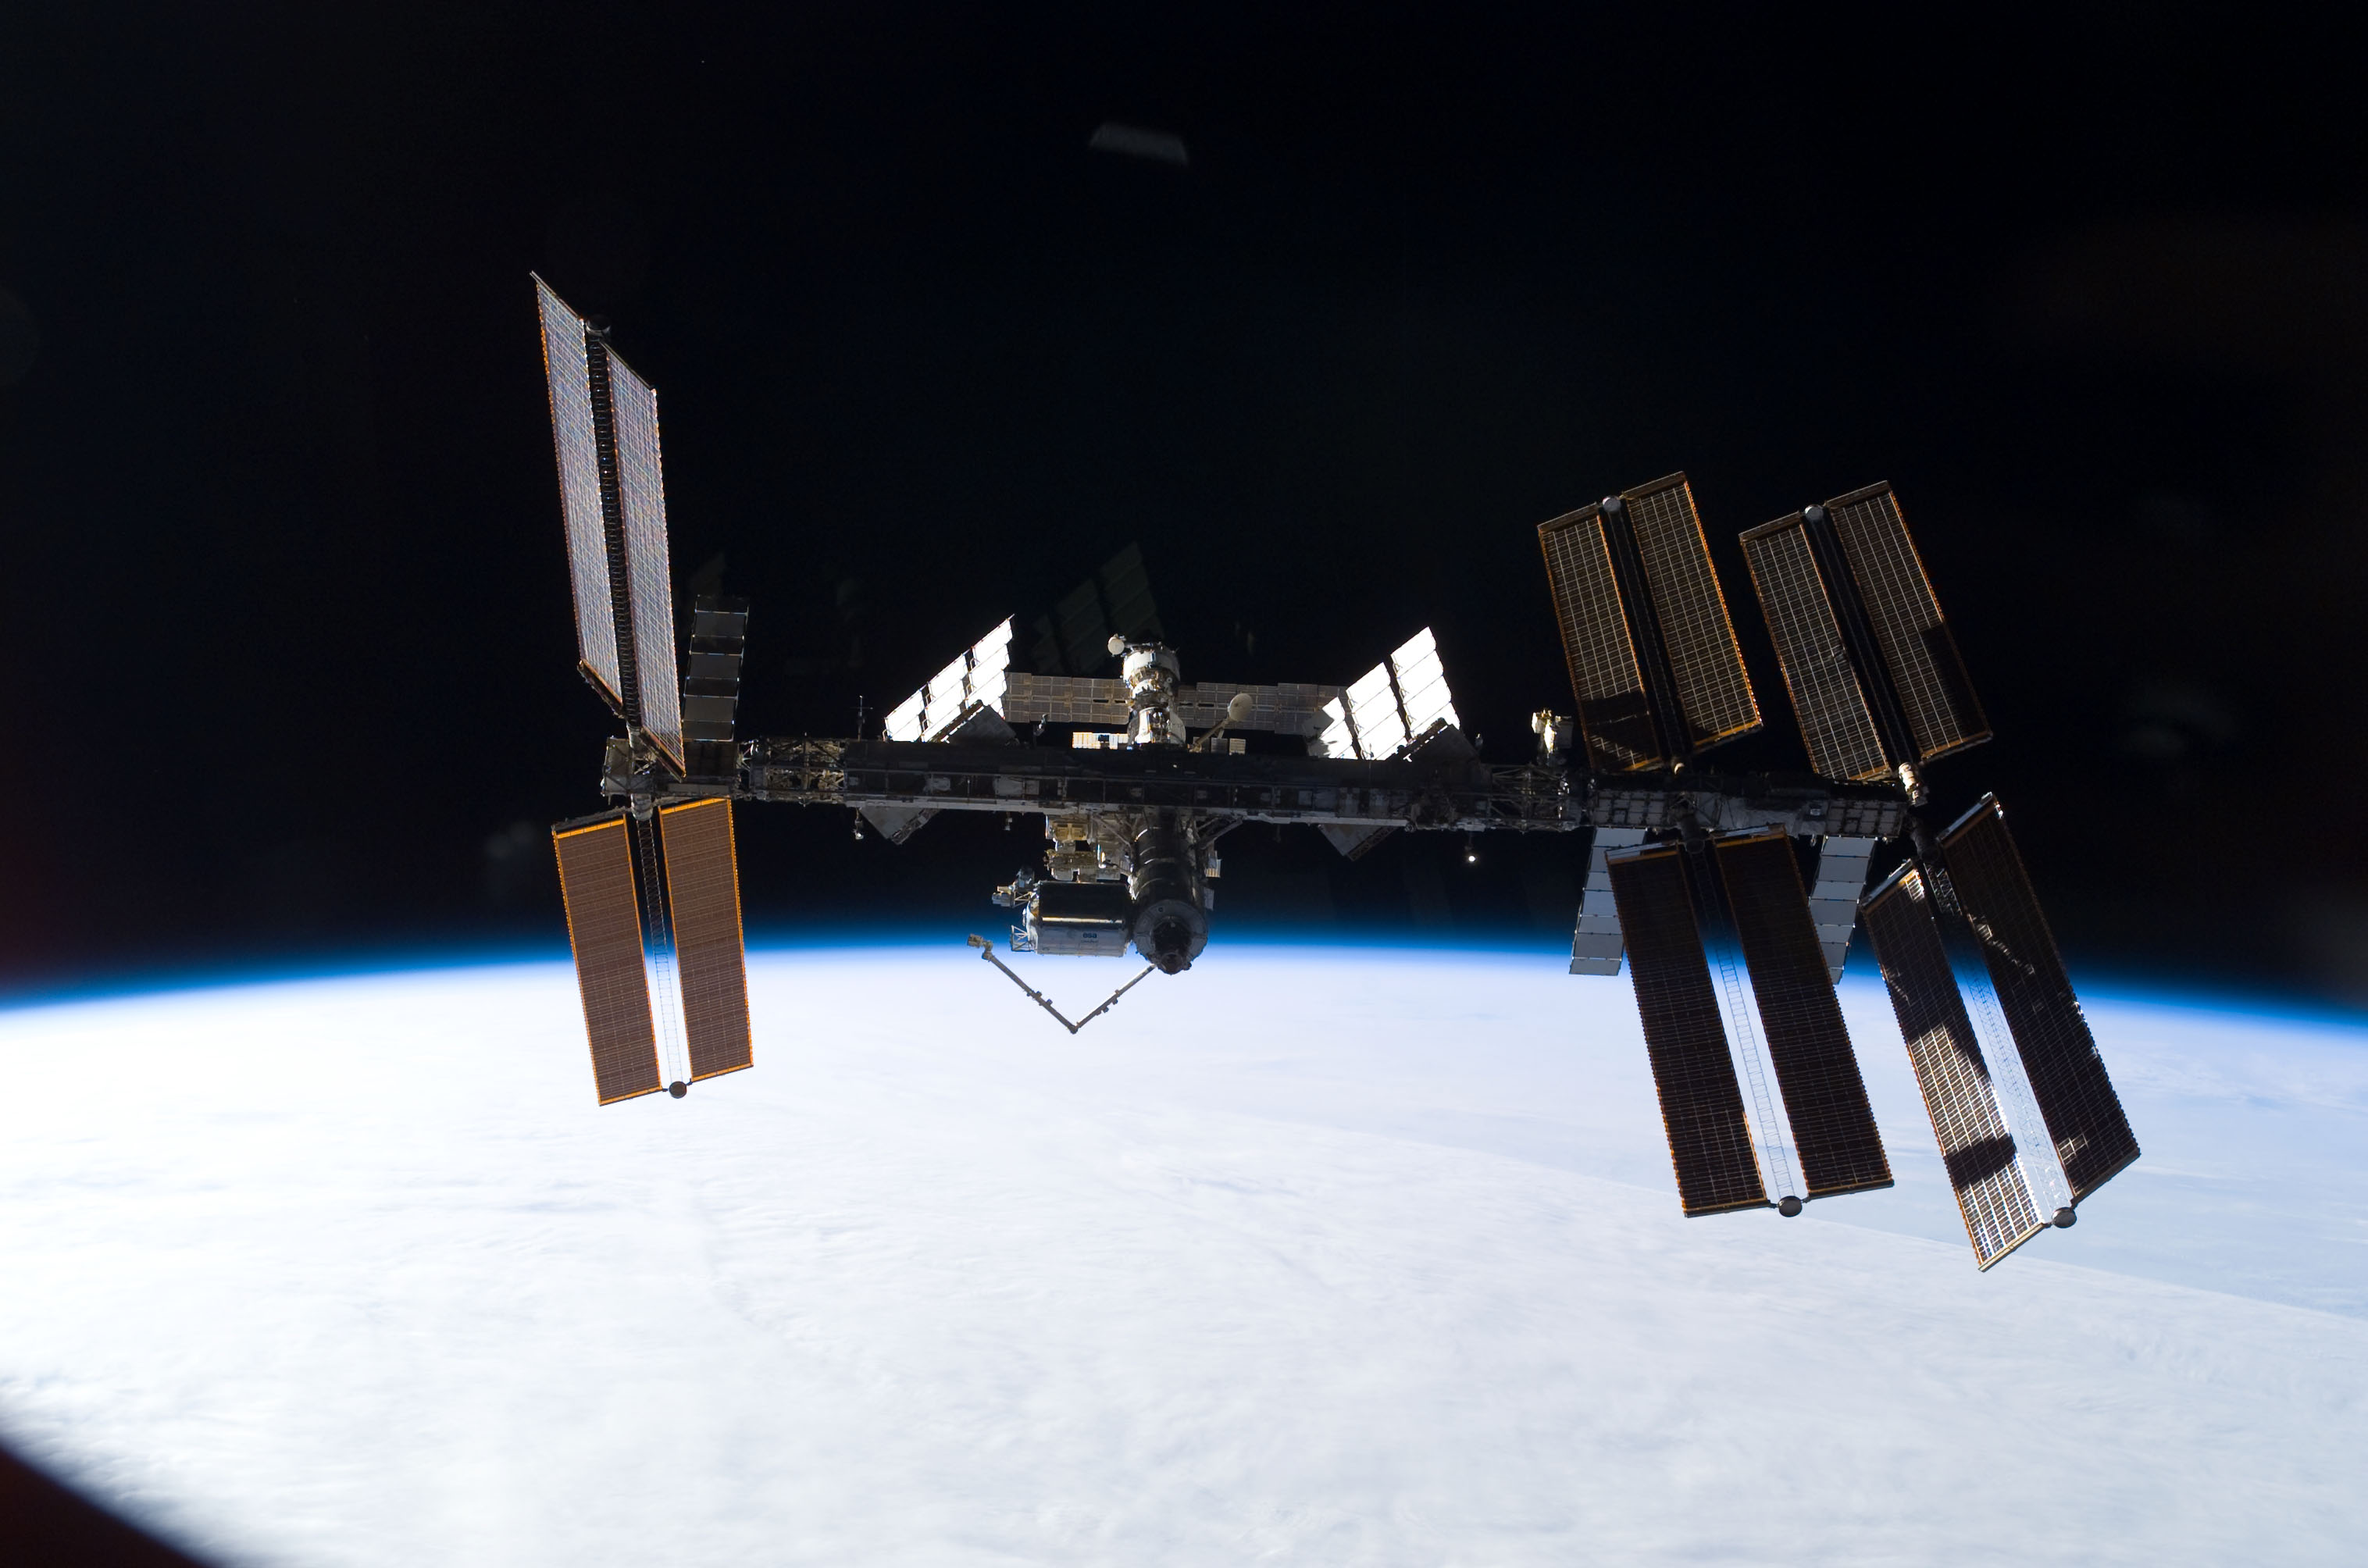 S122E011075 - STS-122 - View of ISS after STS-122 Undocking